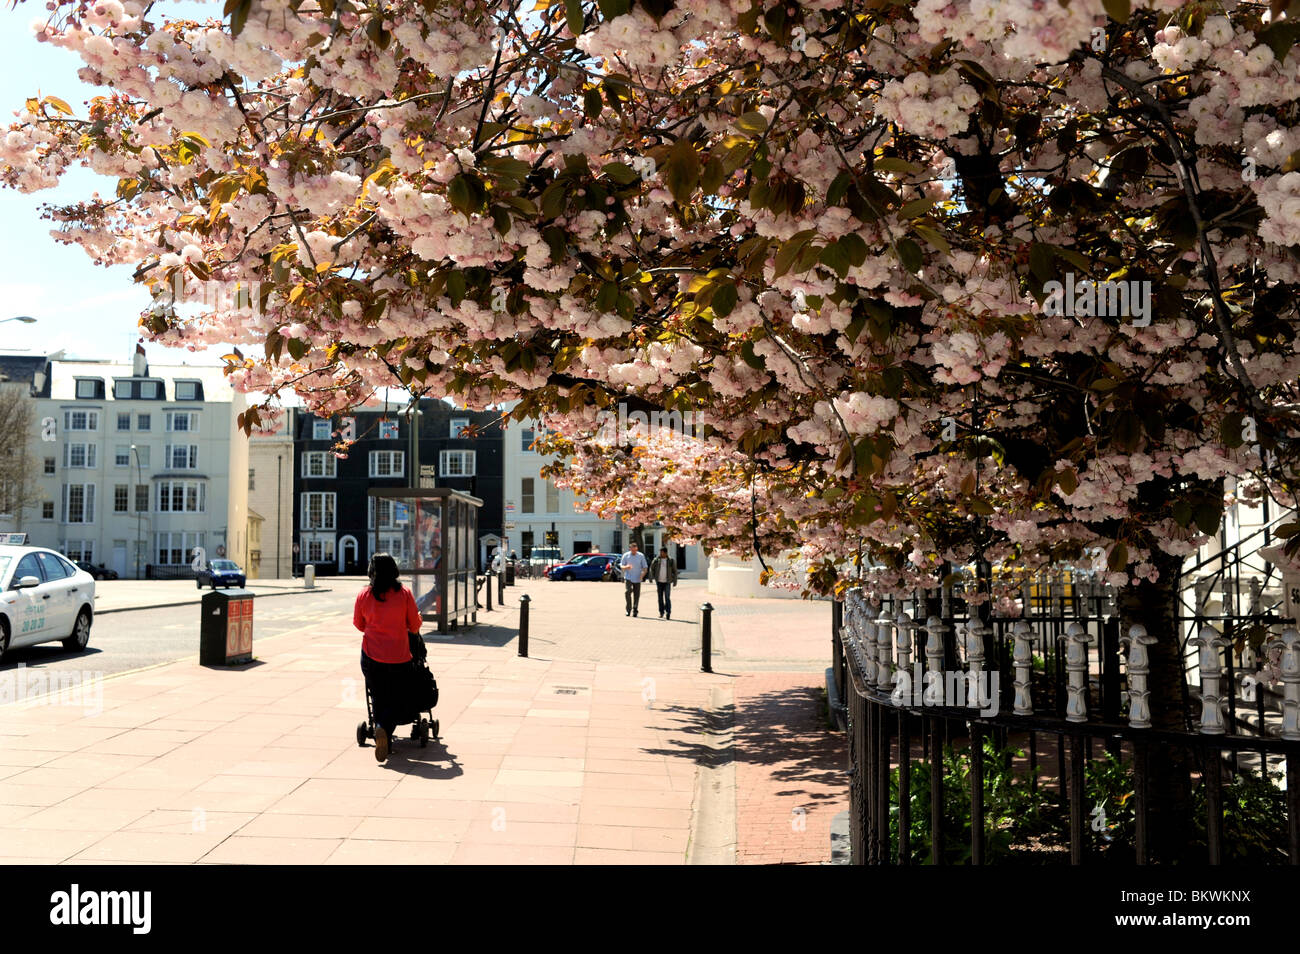 Cherry blossom in full bloom in Brighton city centre at spring time UK Stock Photo